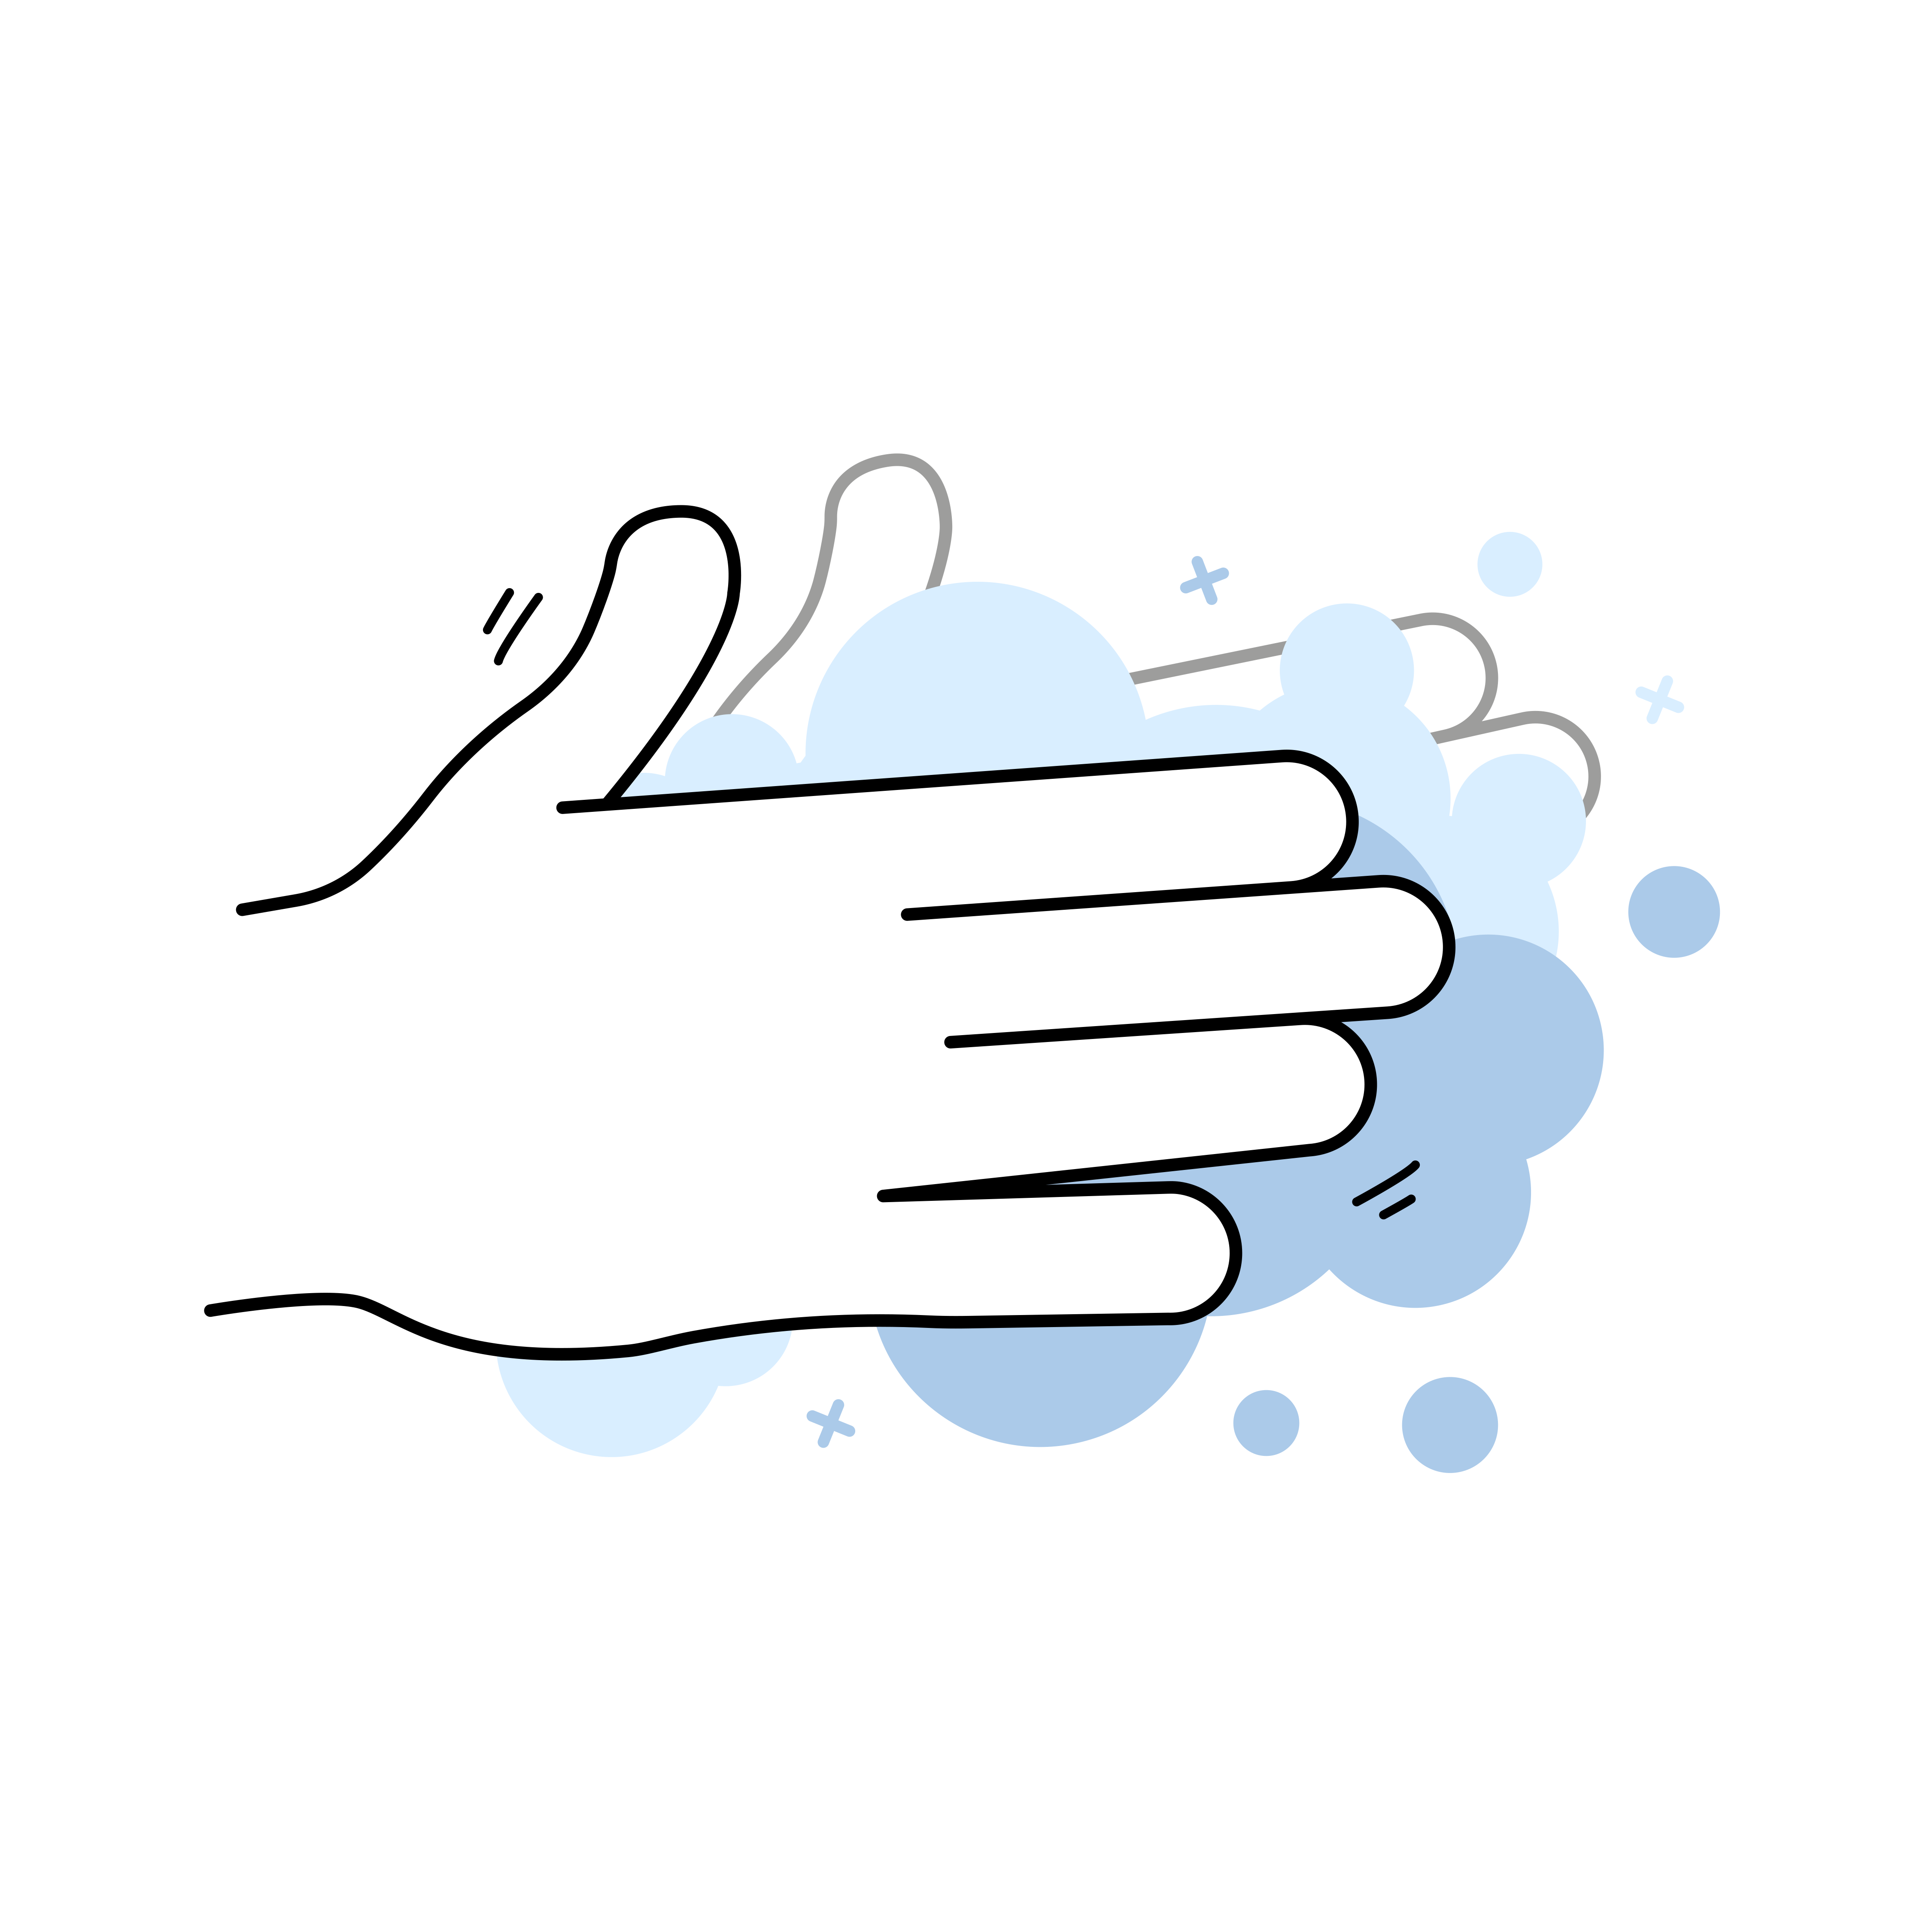 Inserting Contact Lenses - Washing Hands